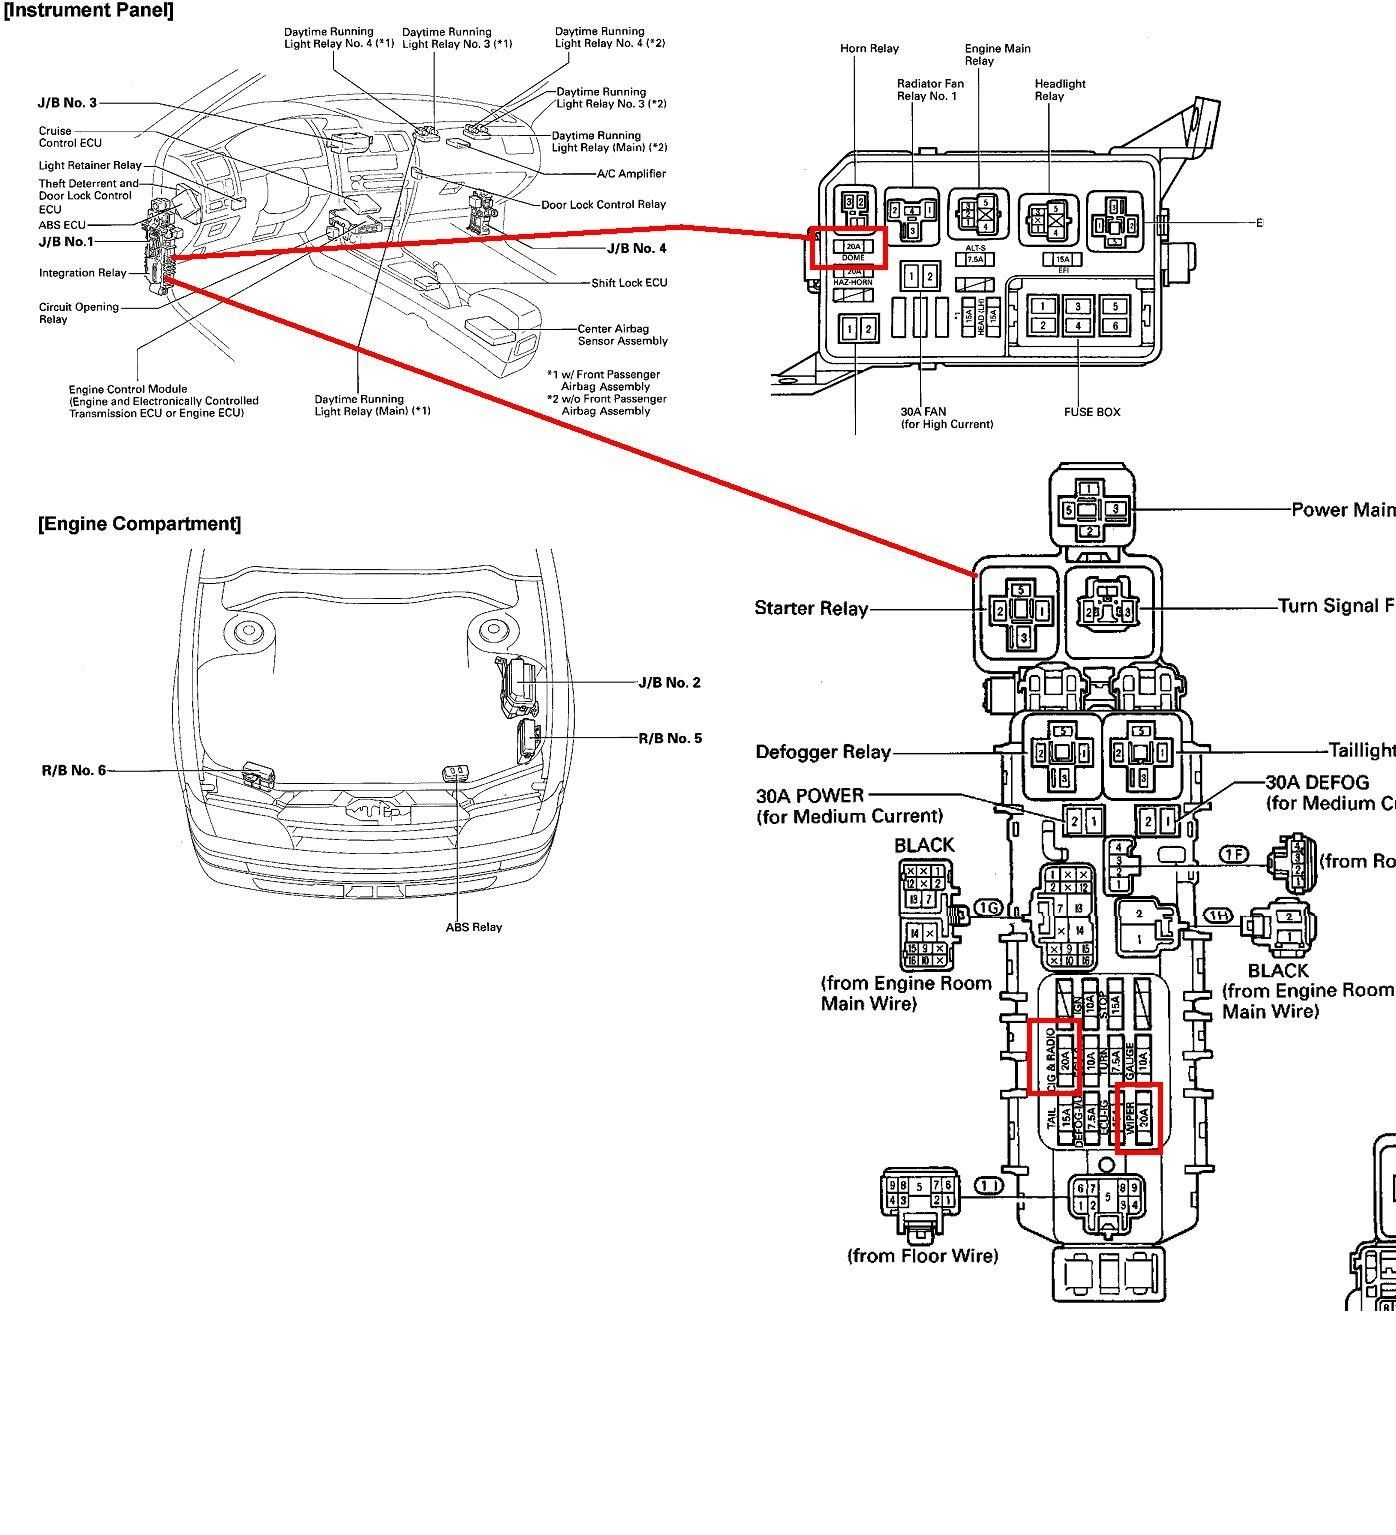 small resolution of 1994 toyota corolla thermostat diagram data wiring diagrams for 2009 toyota corolla wiring diagram